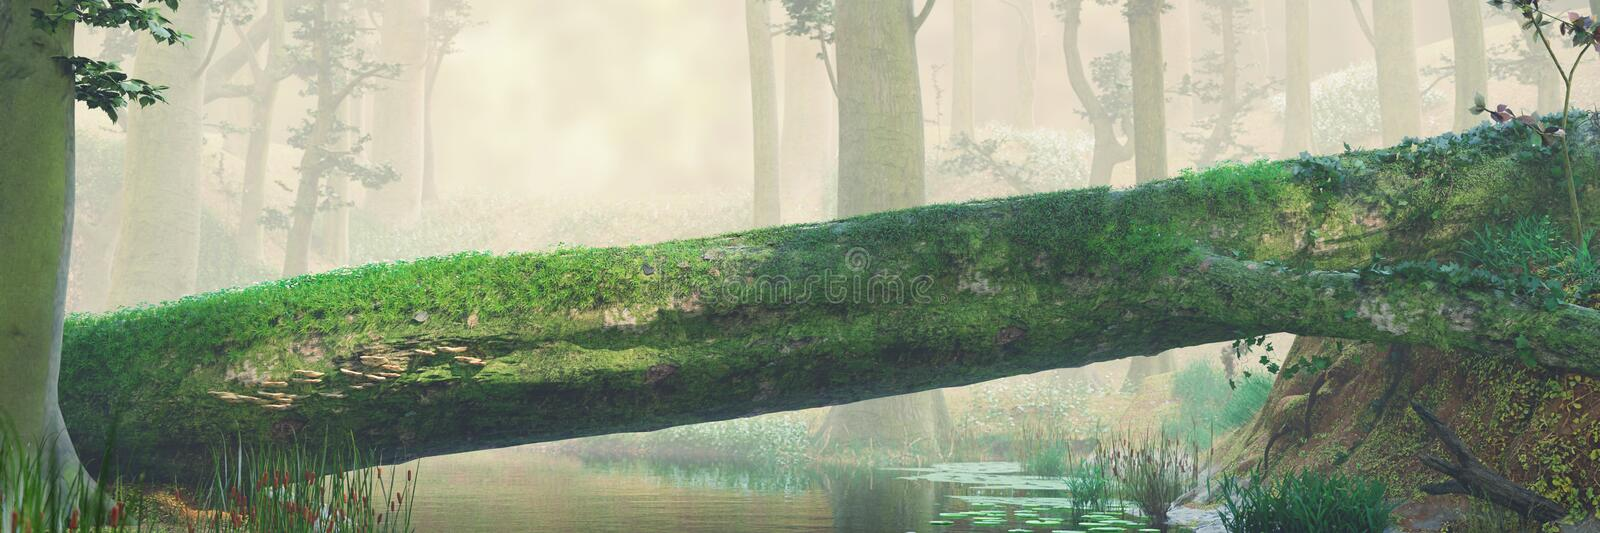 Fallen tree, natural bridge in magical forest, beautiful fantasy forest landscape. Tree river crossing in the woods, panorama banner royalty free stock photo